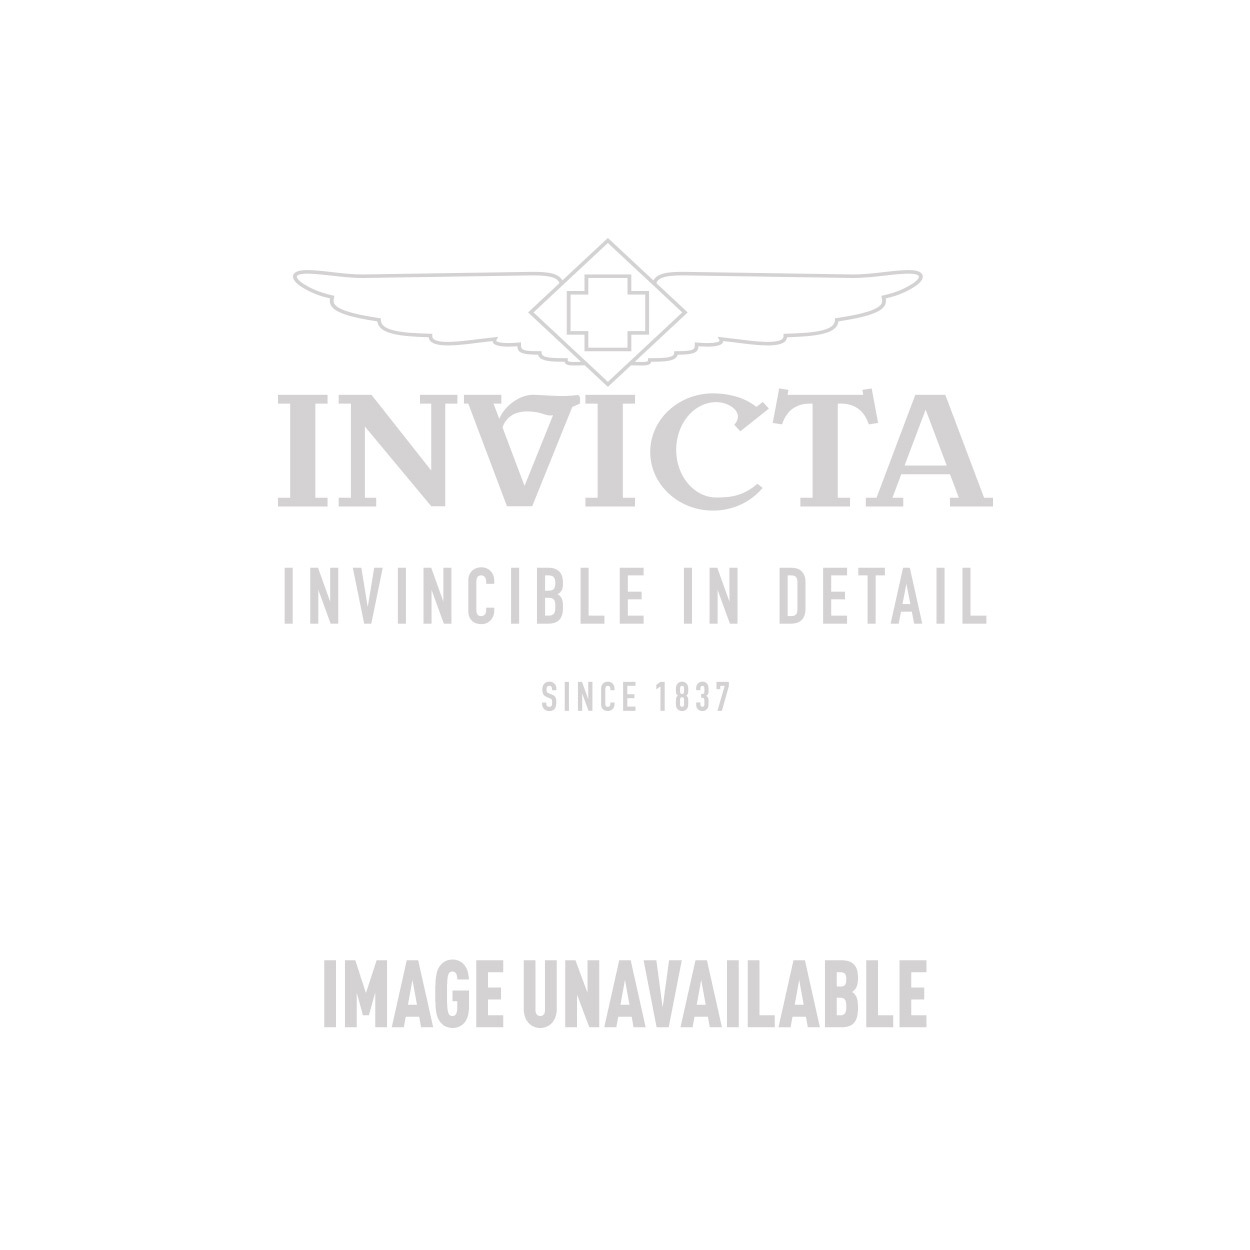 Invicta DNA Swiss Movement Quartz Watch - Stainless Steel case with Black tone Silicone band - Model 10436